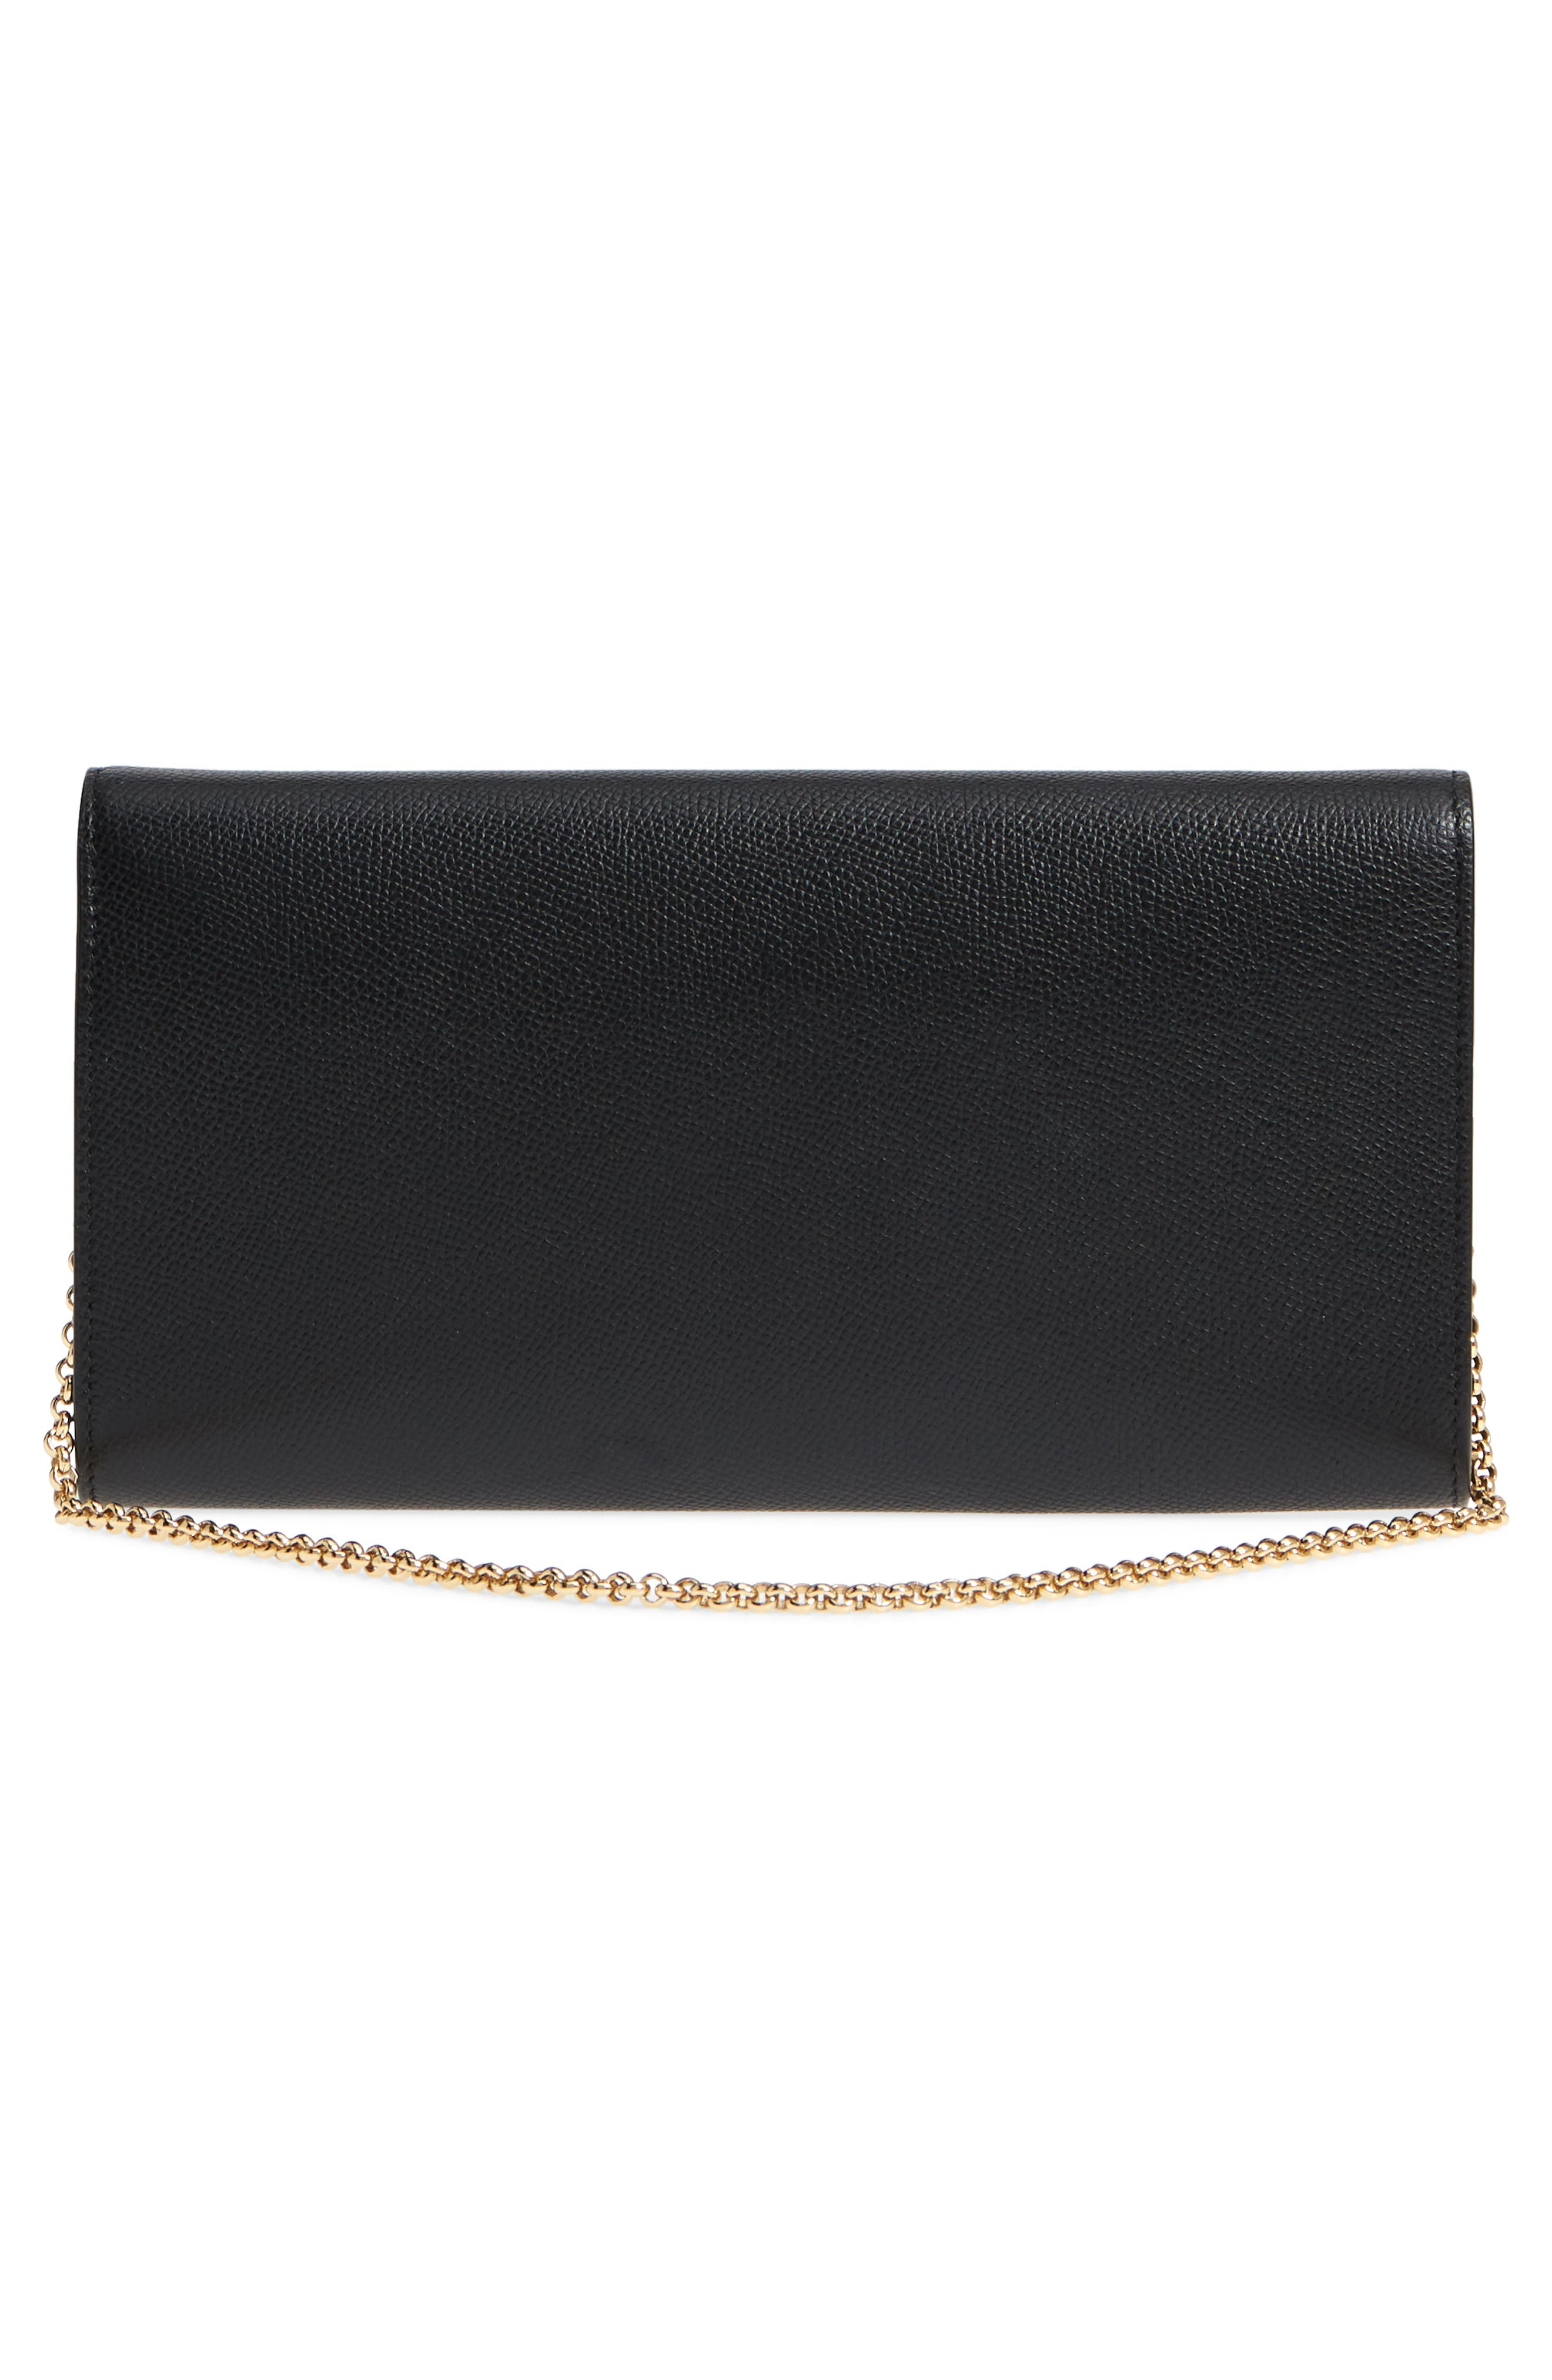 Gancio Calfskin Leather Wallet on a Chain,                             Alternate thumbnail 3, color,                             Nero